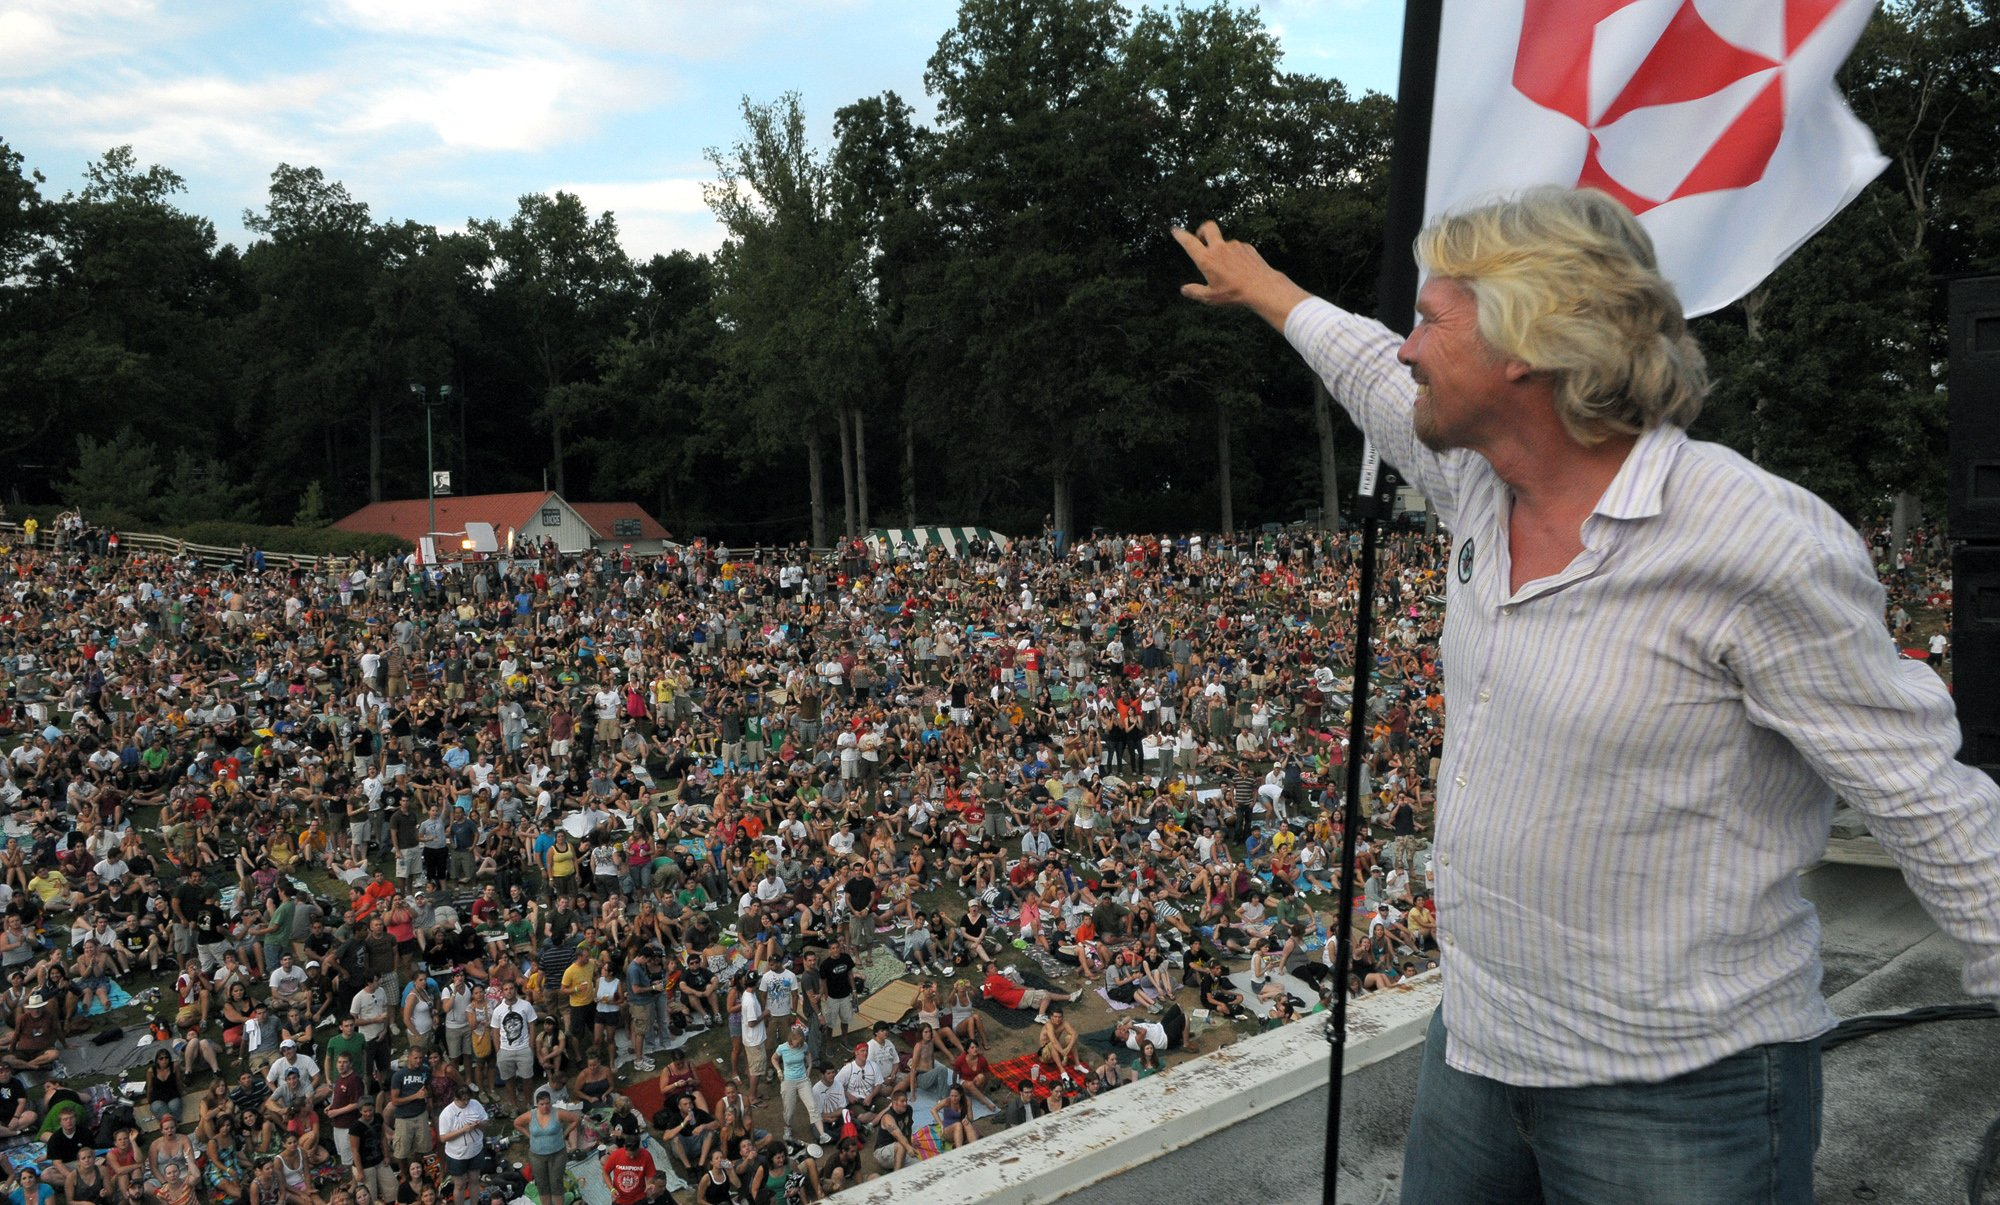 Richard waves to crowd at Free Festival